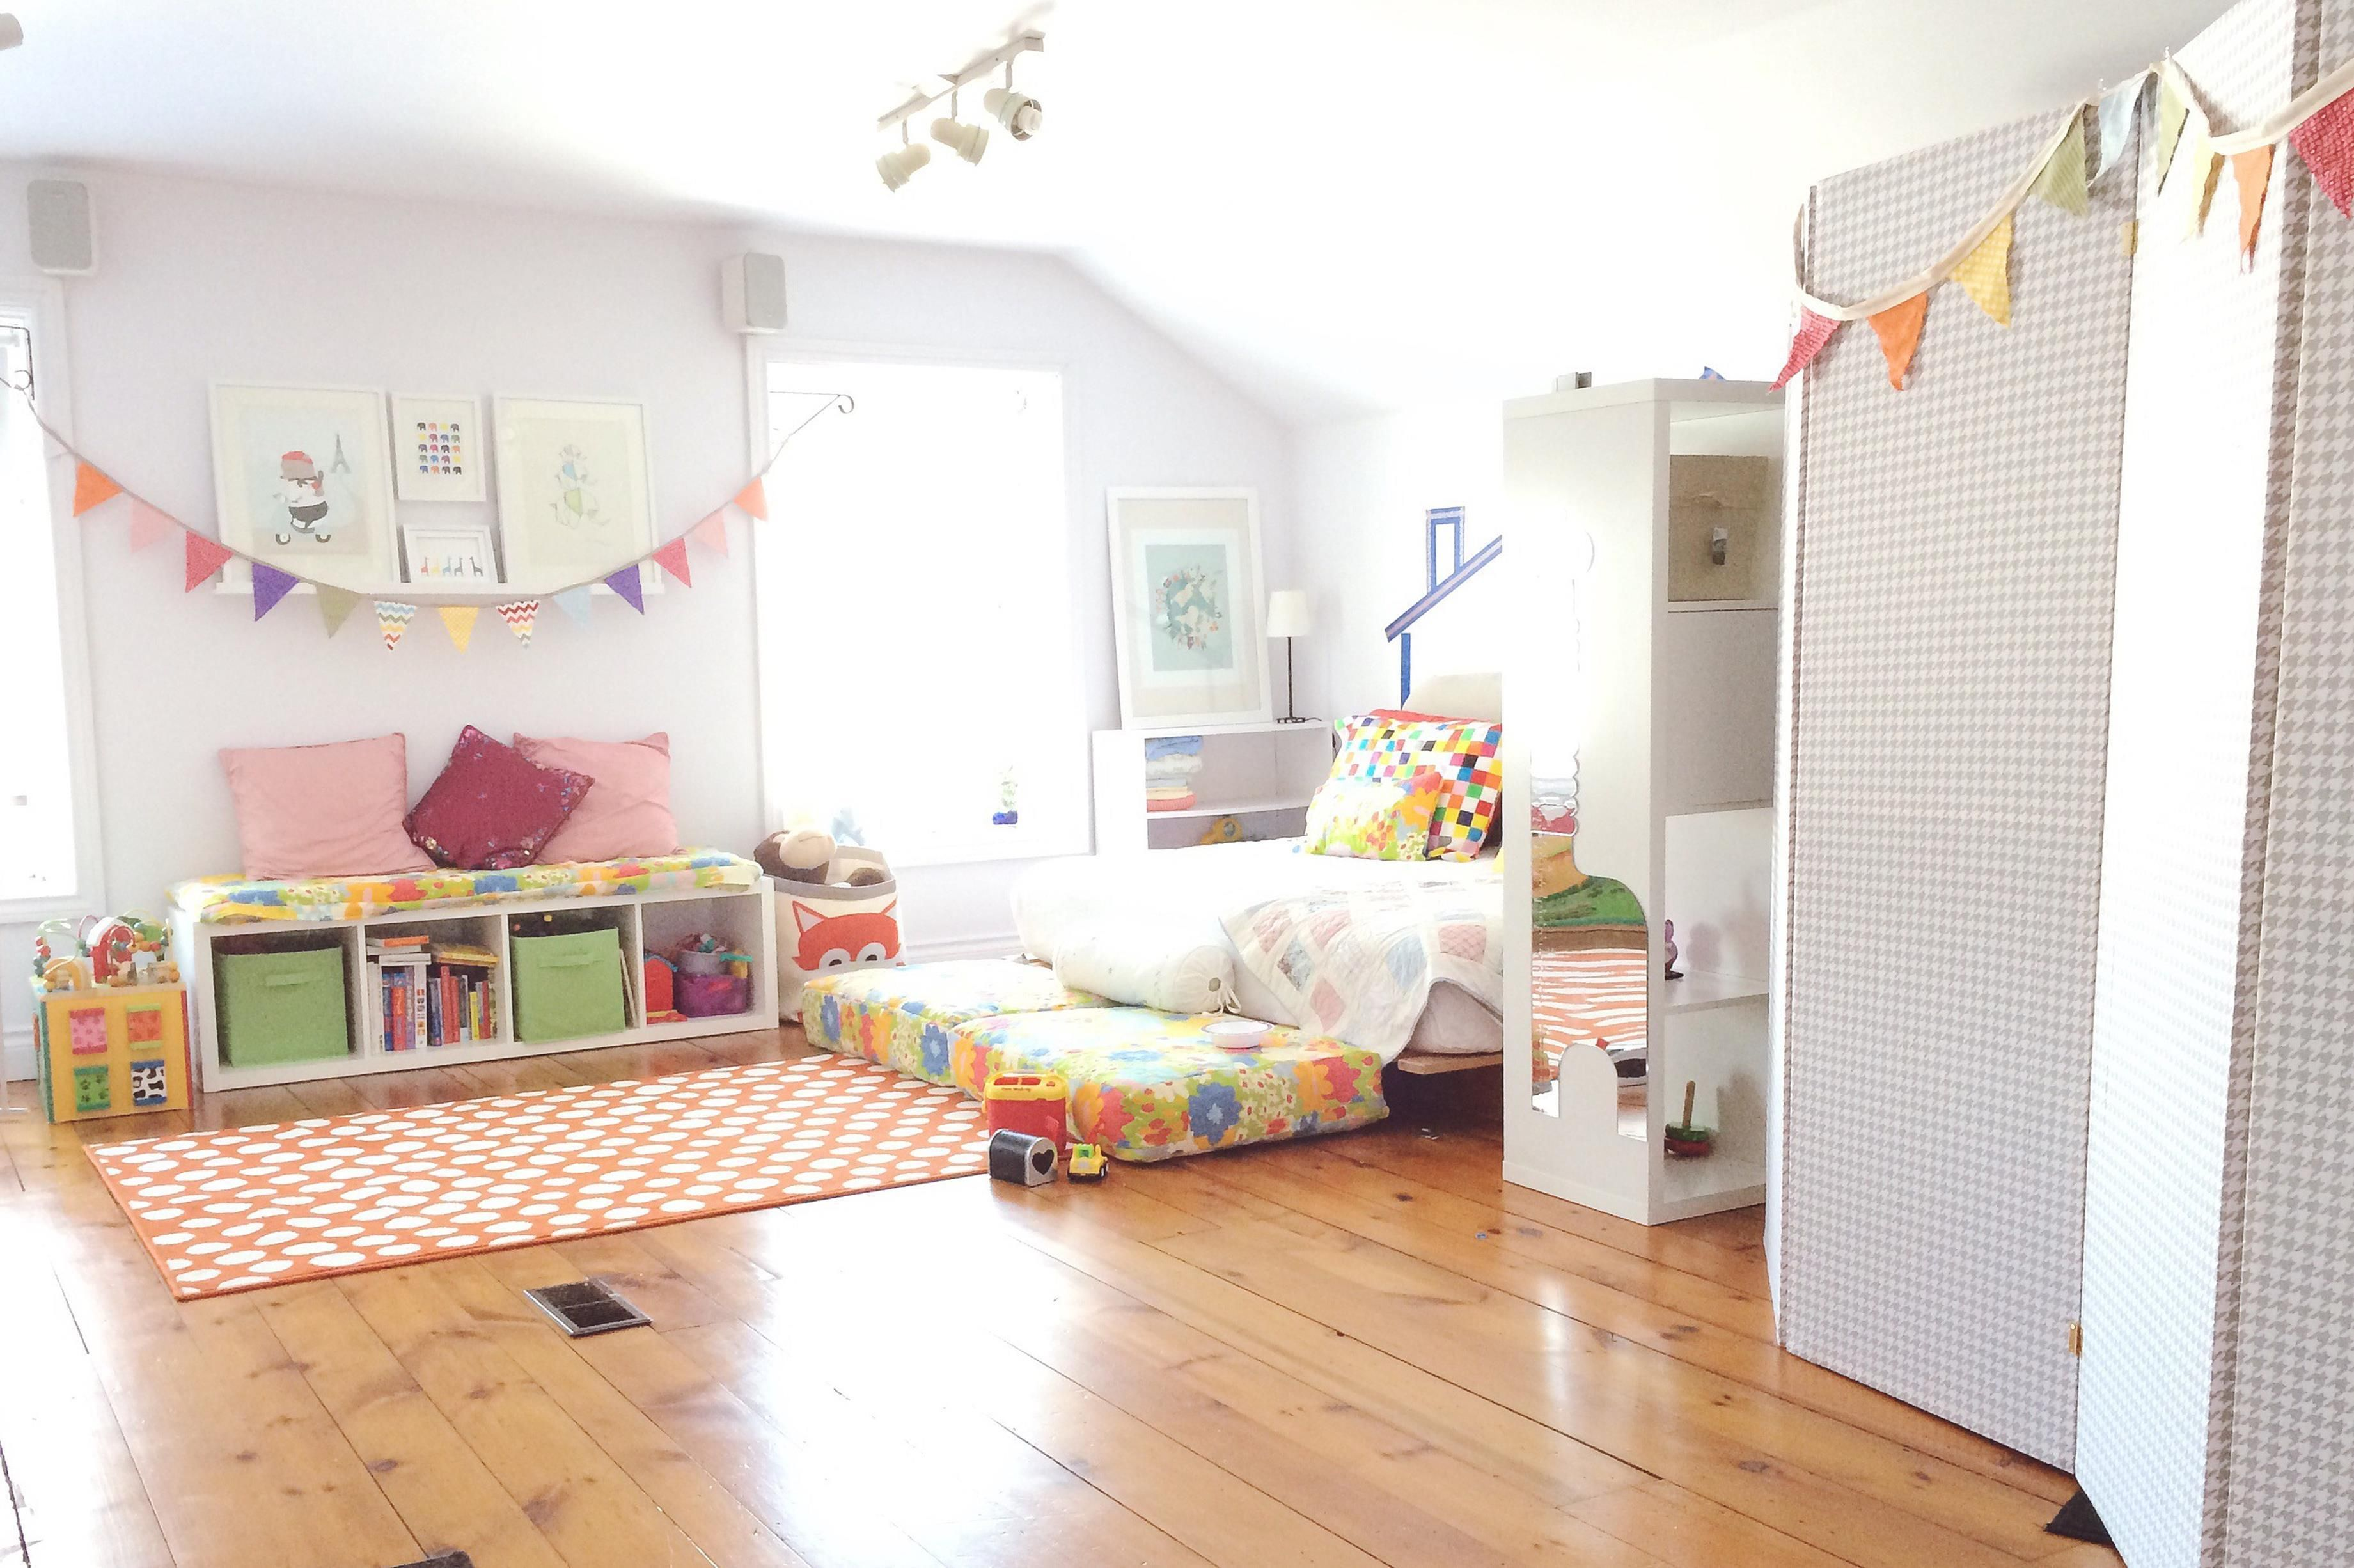 36 Cozy Attic Playroom Design Ideas, Your Kids Are Sure To Love It